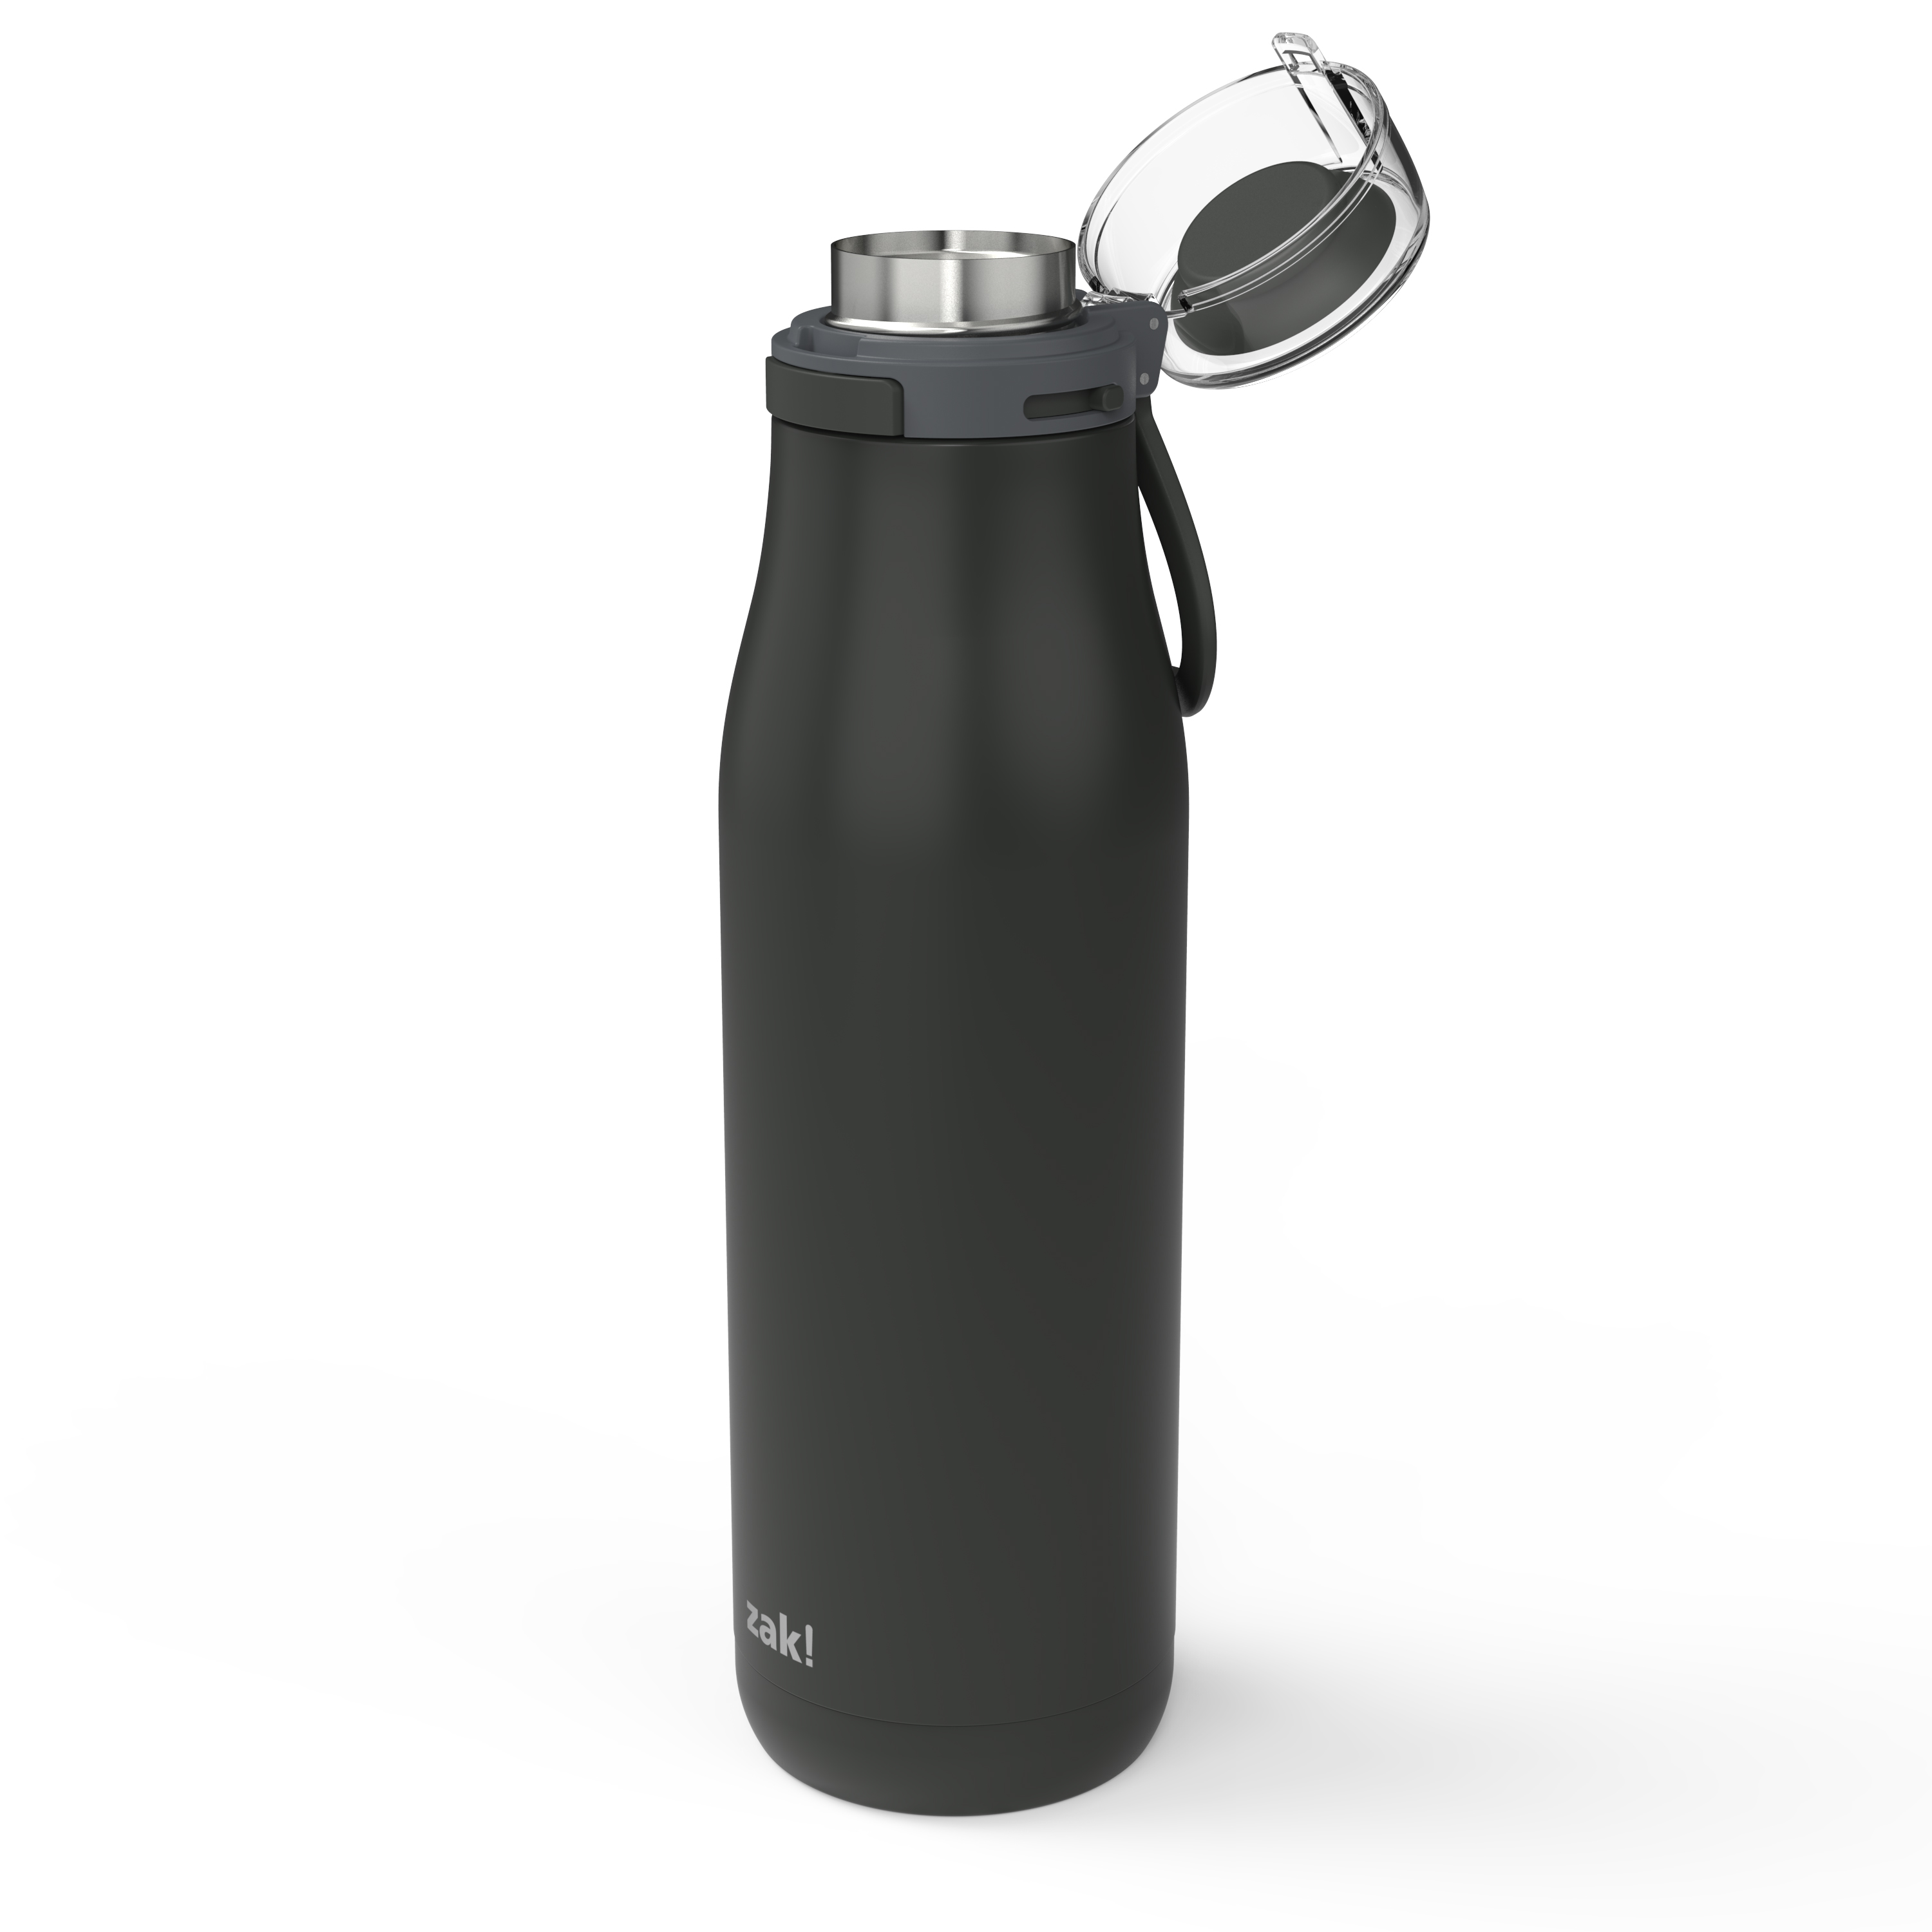 Kiona 29 ounce Vacuum Insulated Stainless Steel Tumbler, Charcoal slideshow image 5